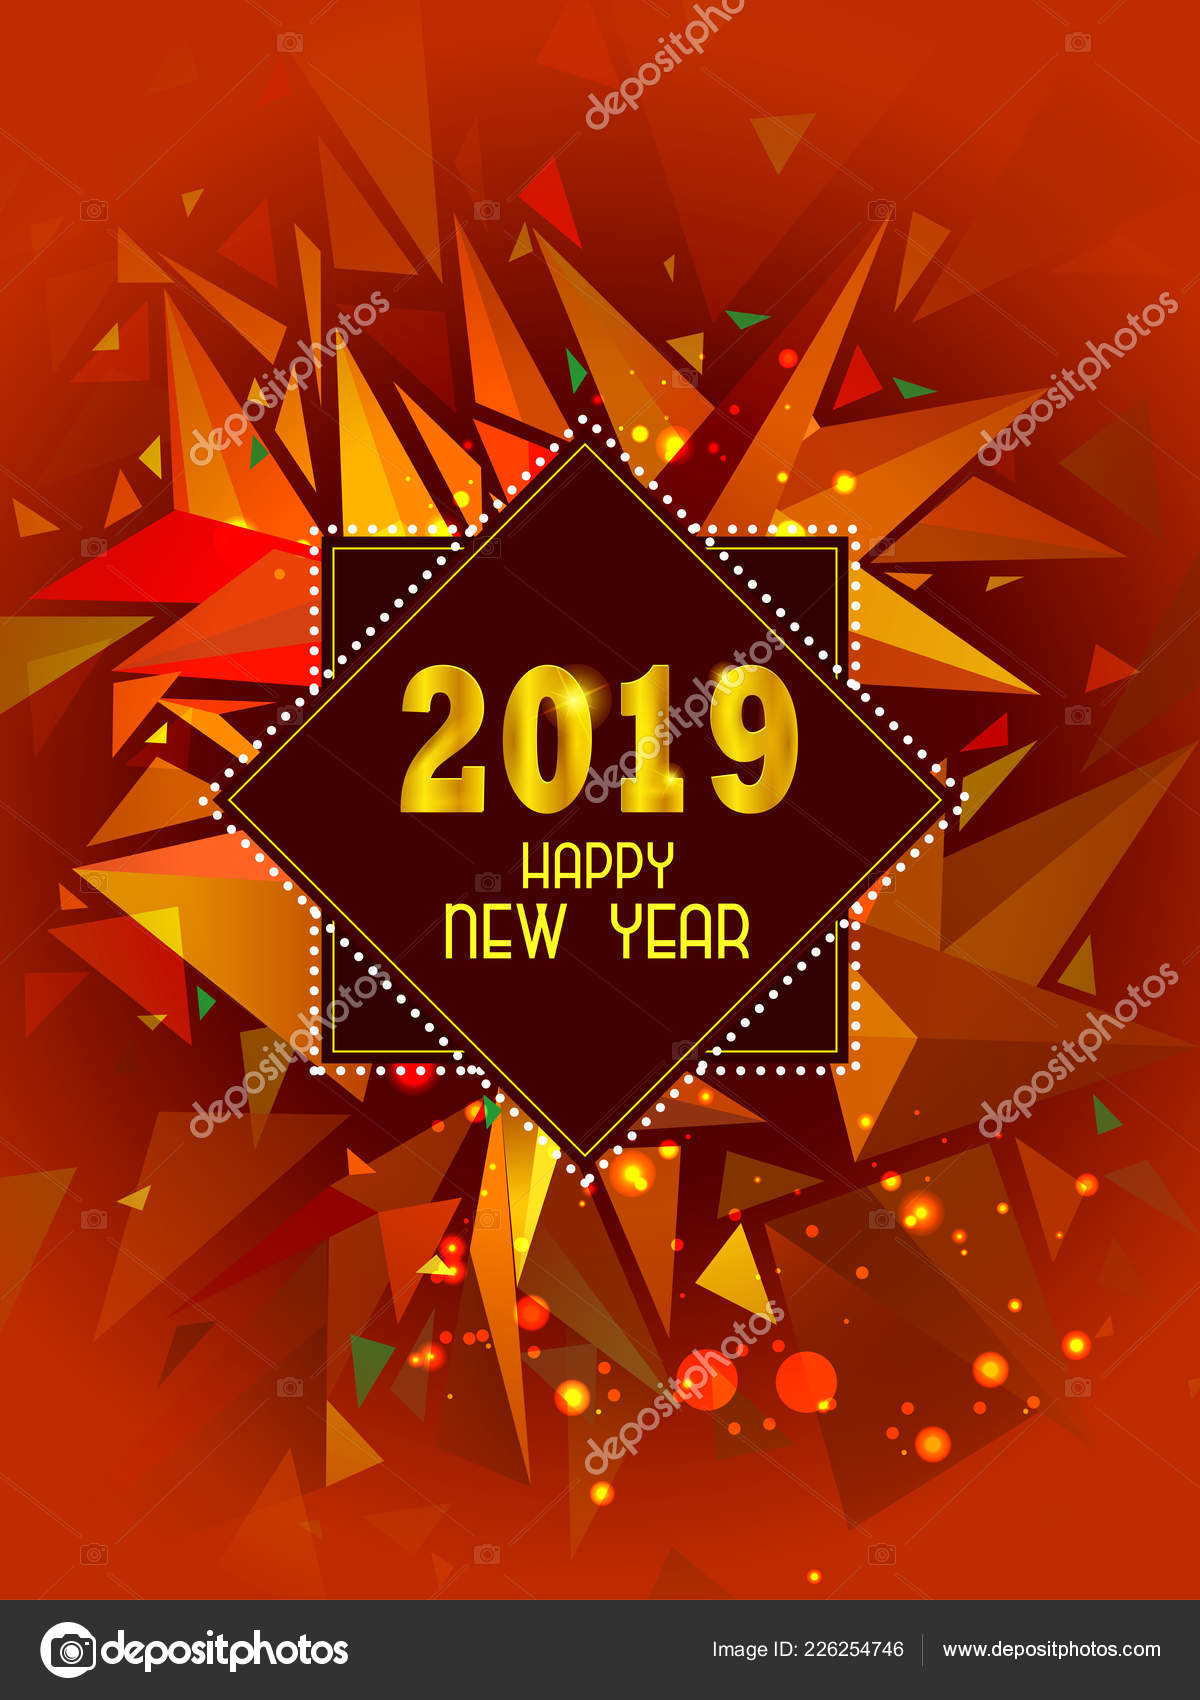 easy to edit vector illustration of happy new year 2019 wishes seasonal greeting background vector by snapgalleria